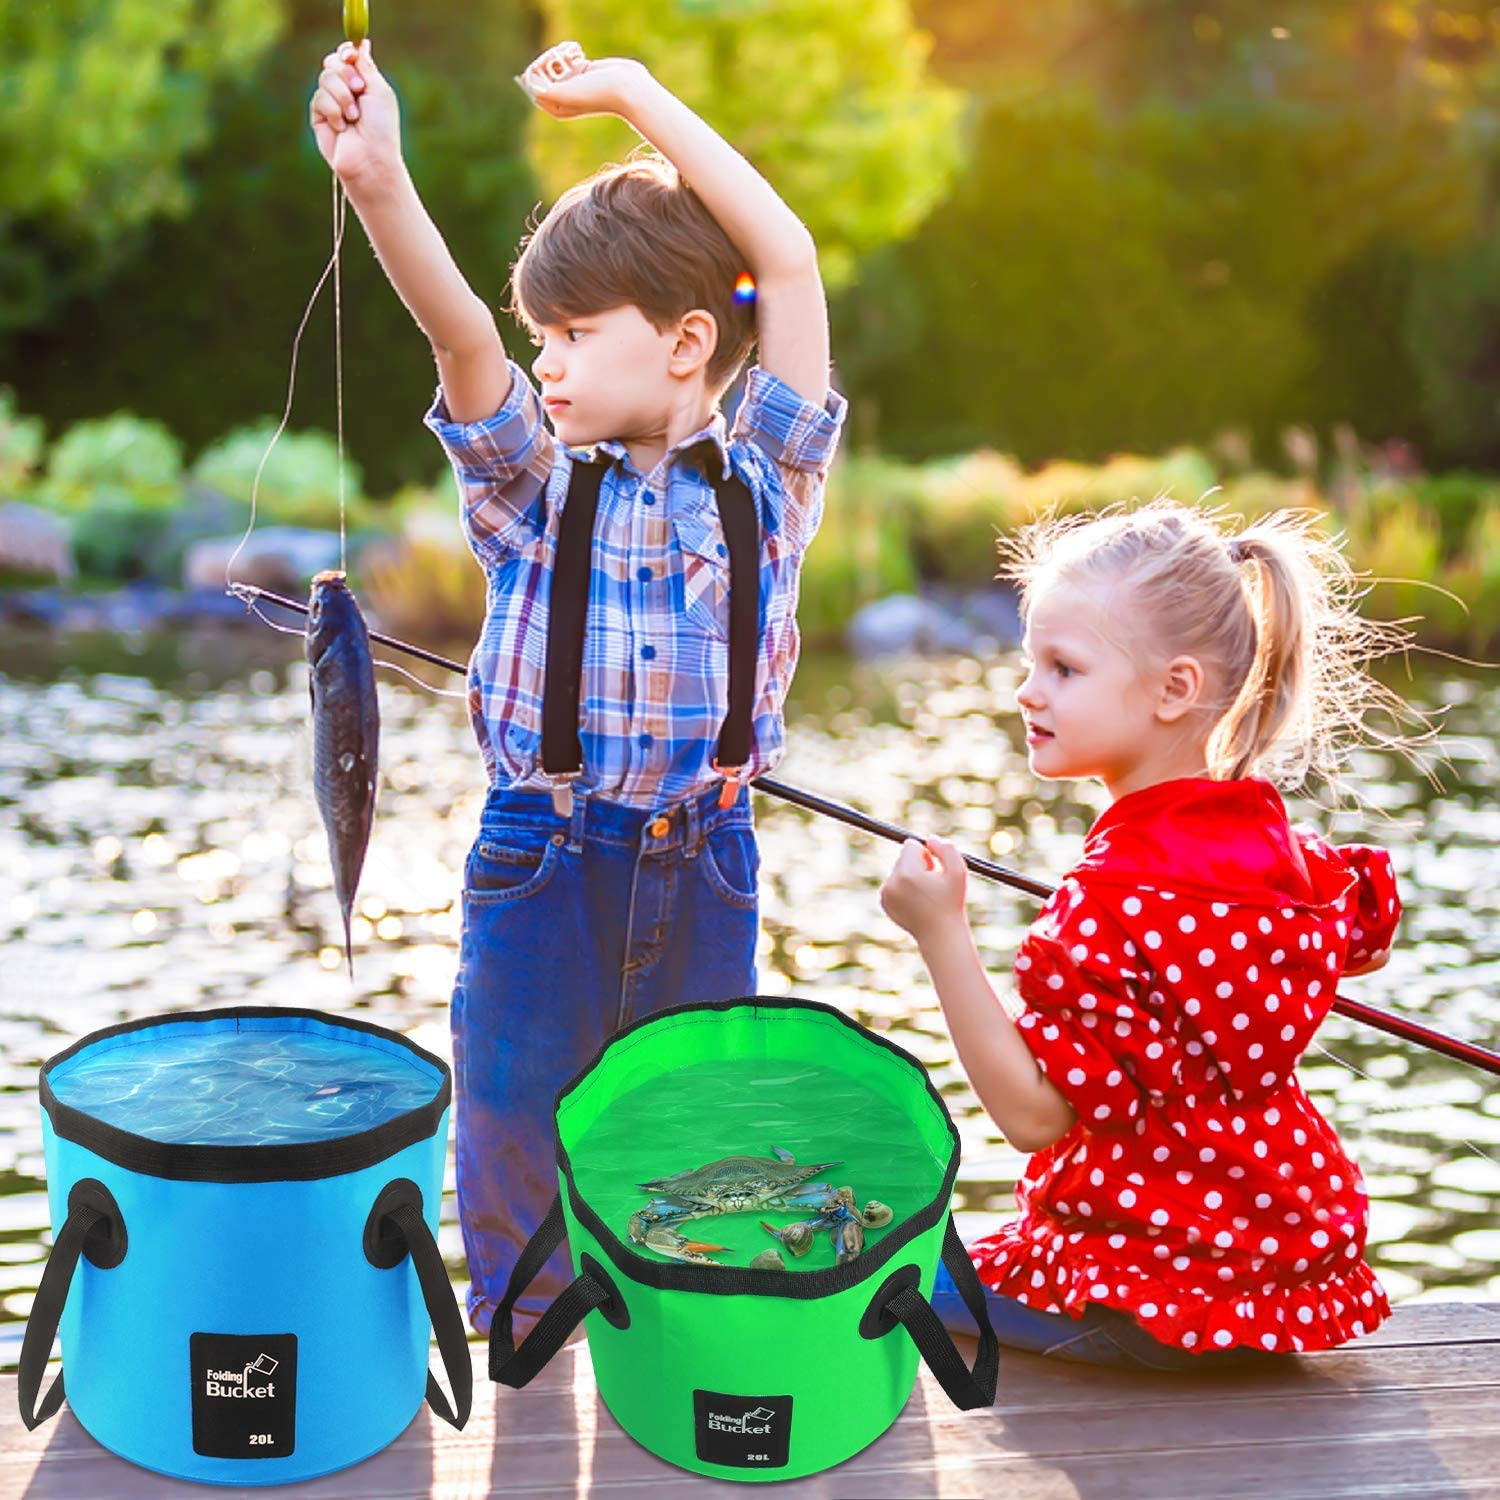 20L AINAAN Multifunctional Collapsible Portable Outdoor Basin Folding Bucket Water Storage Bag for Camping Hiking Travel Fishing Caravan Washing Blue